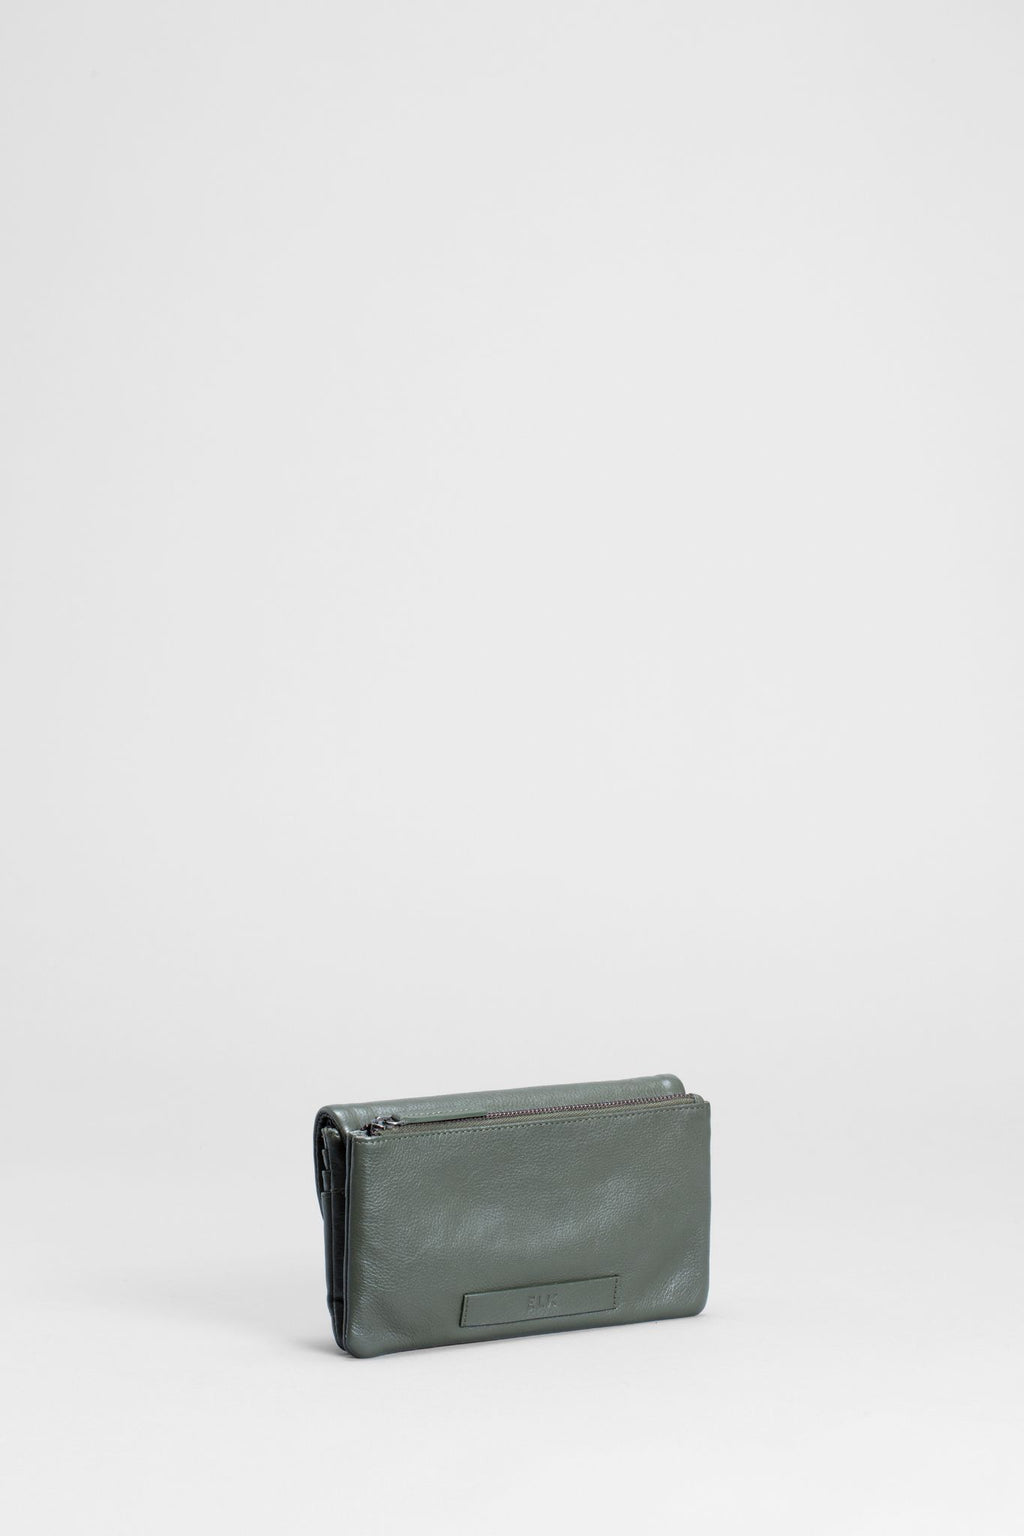 Buy Flon Wallet from ELK The Label at PAYA boutique